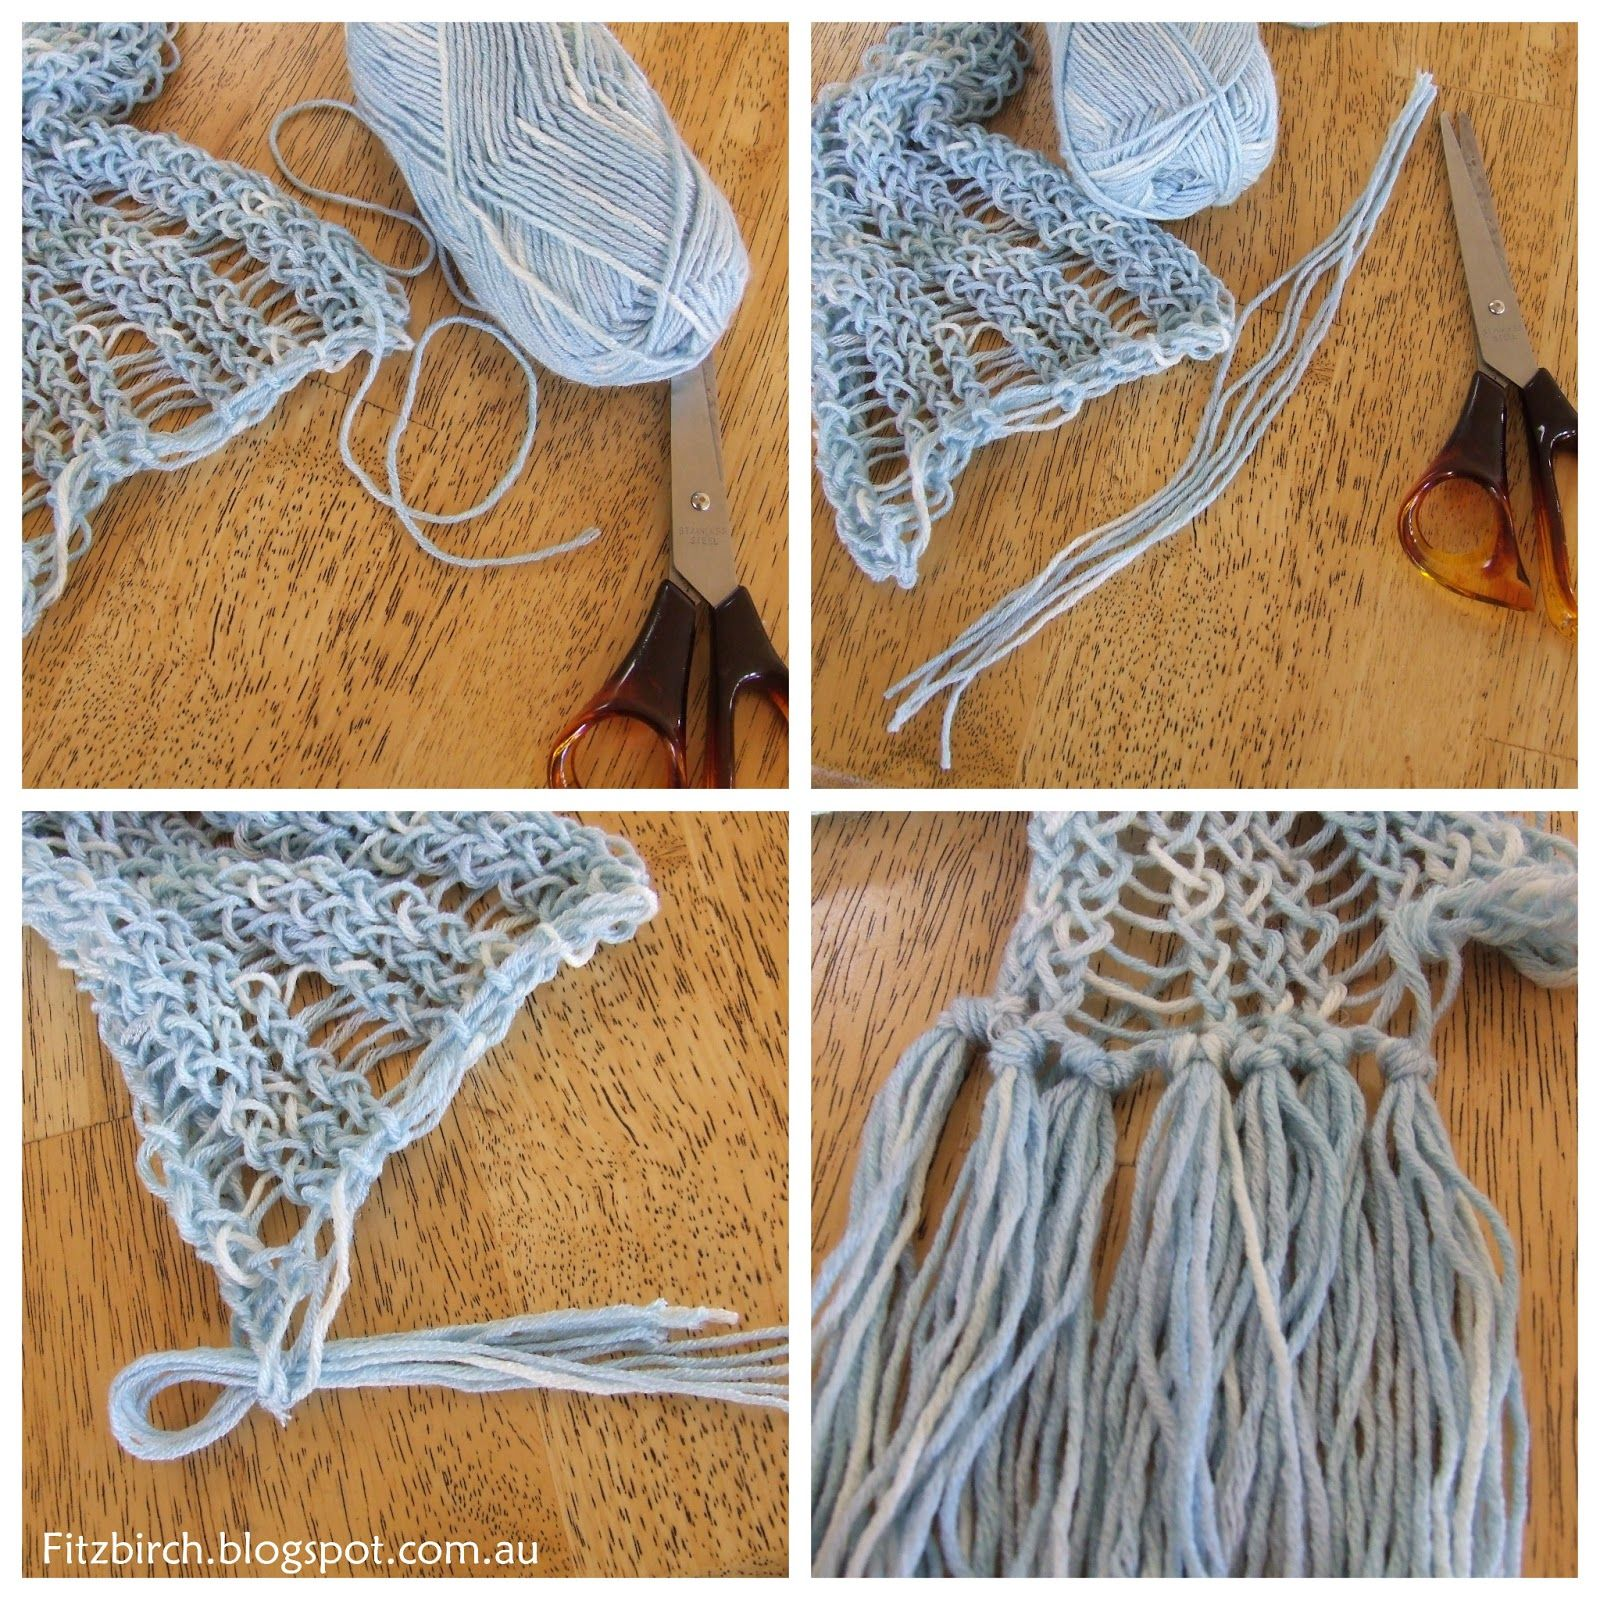 13 Loom Knitting Projects for Beginners | Loom knitting ...